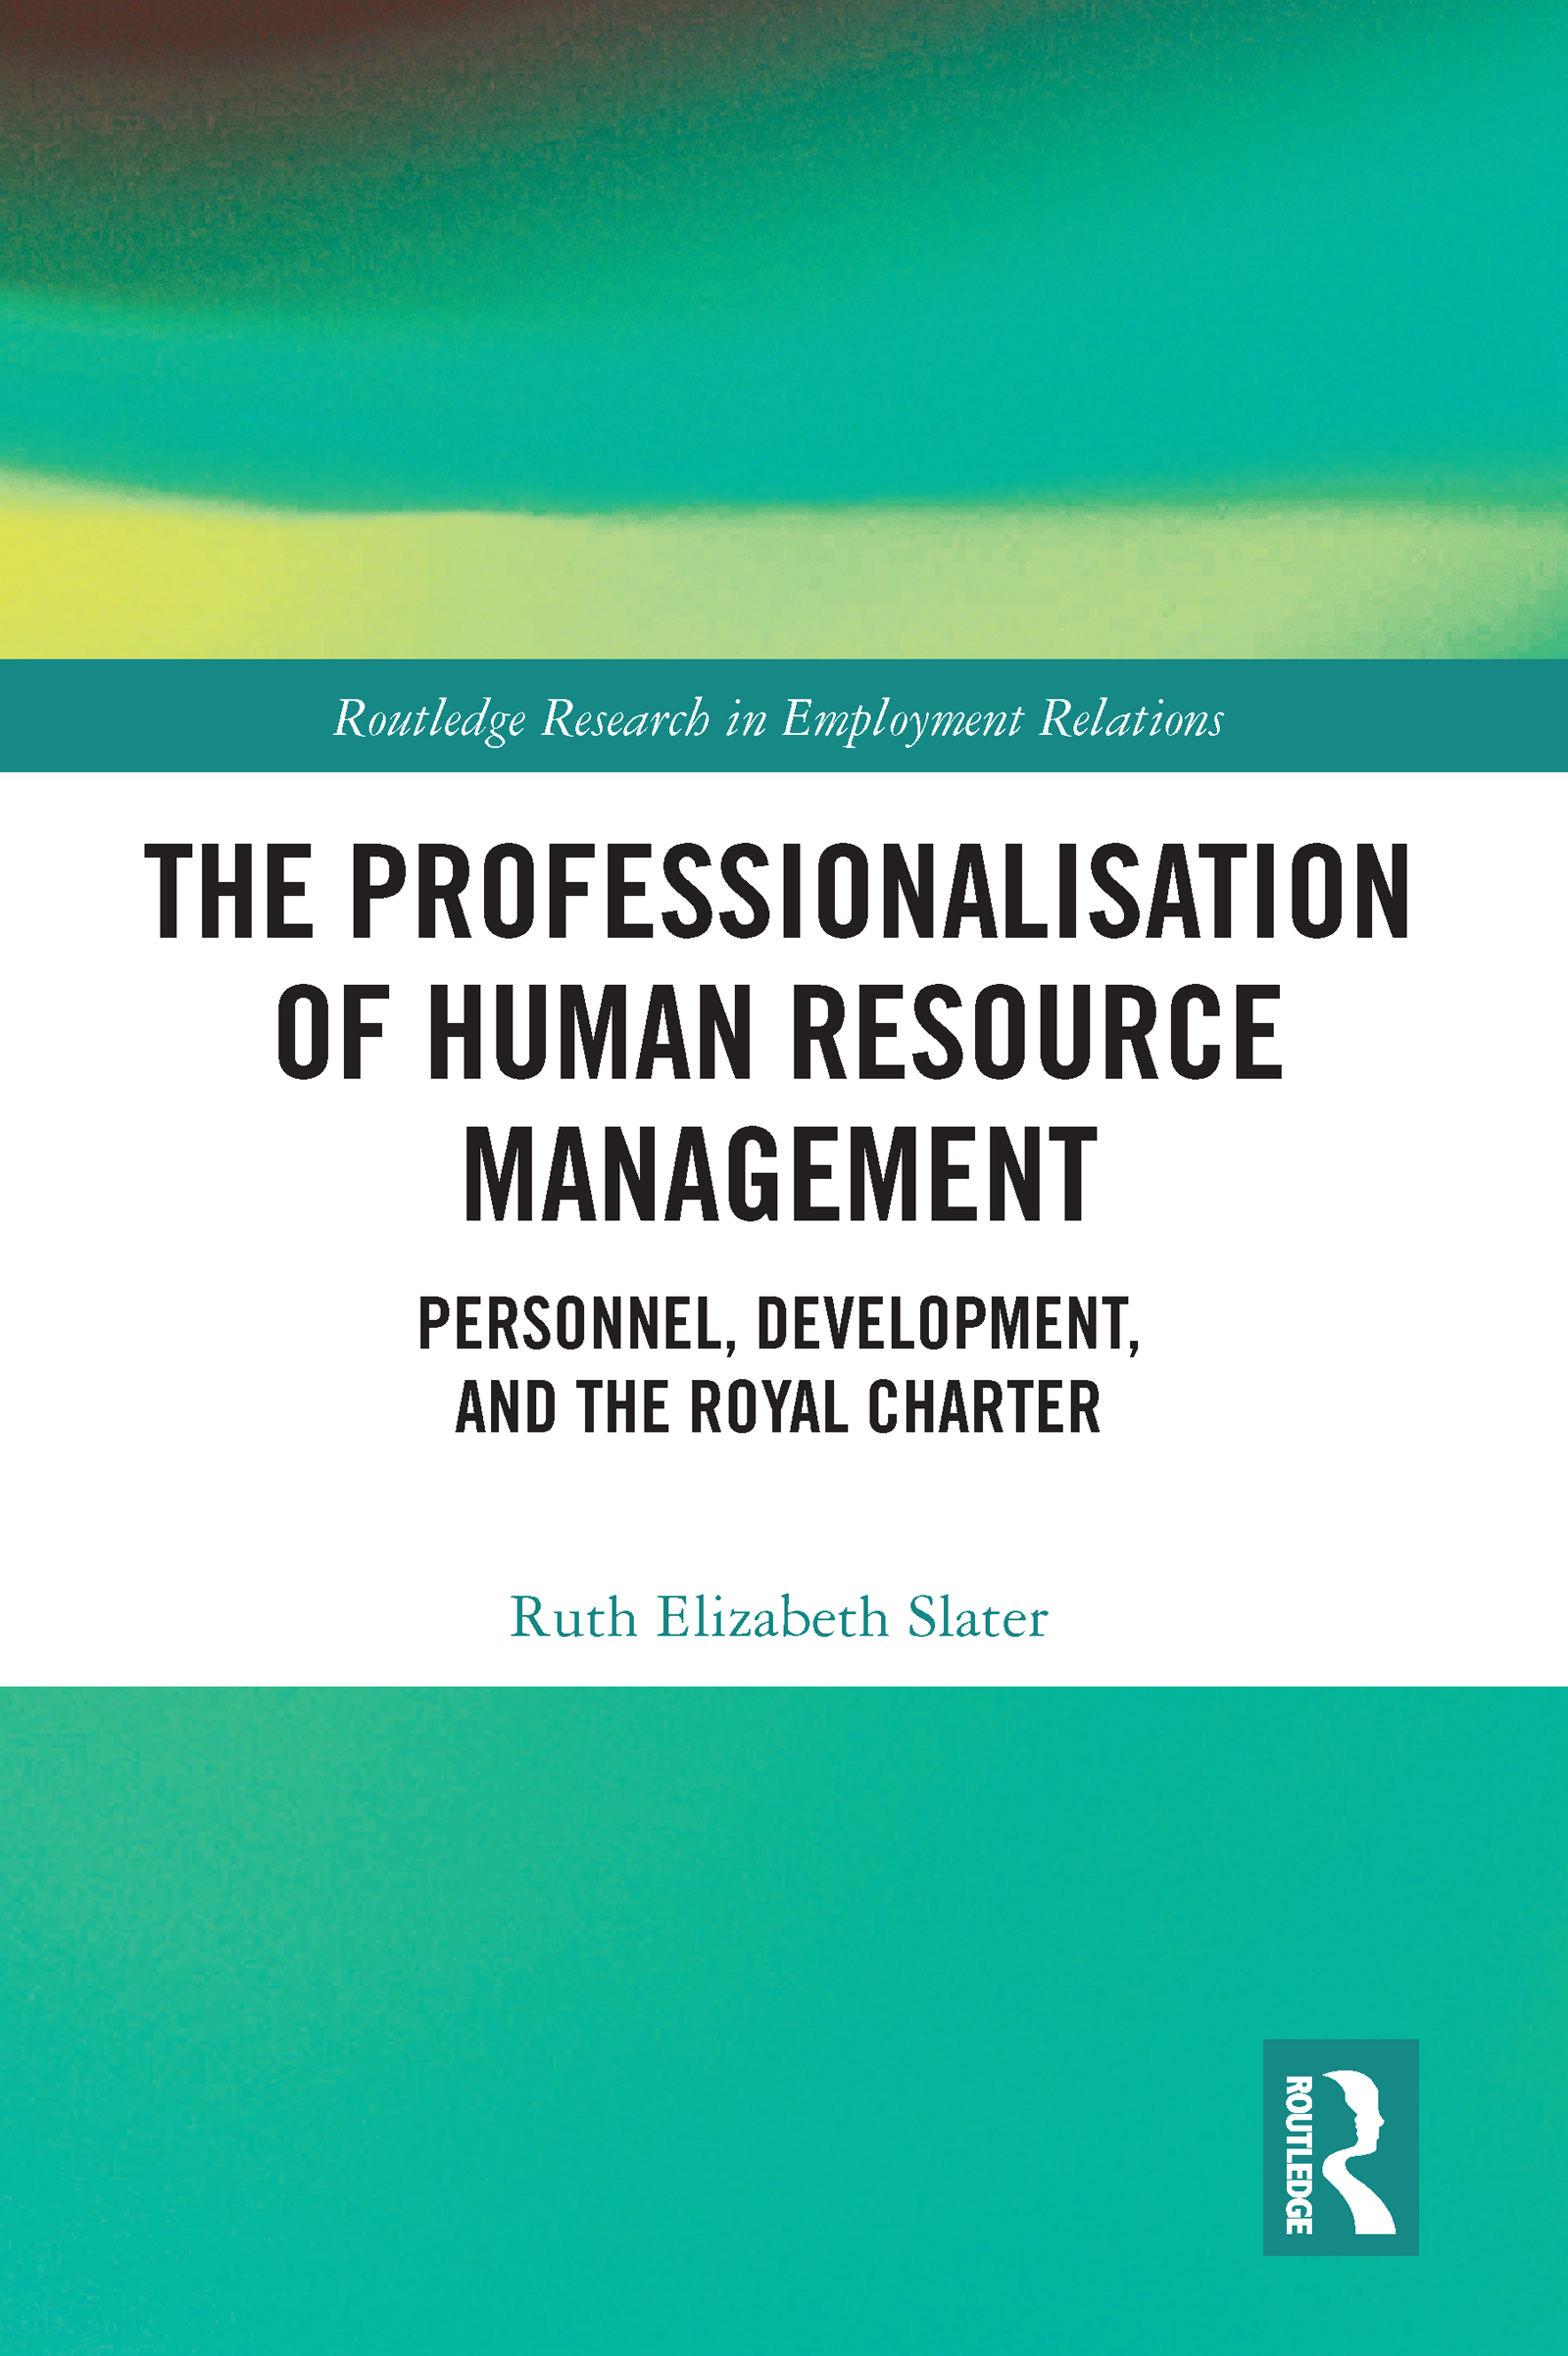 The Professionalisation of Human Resource Management